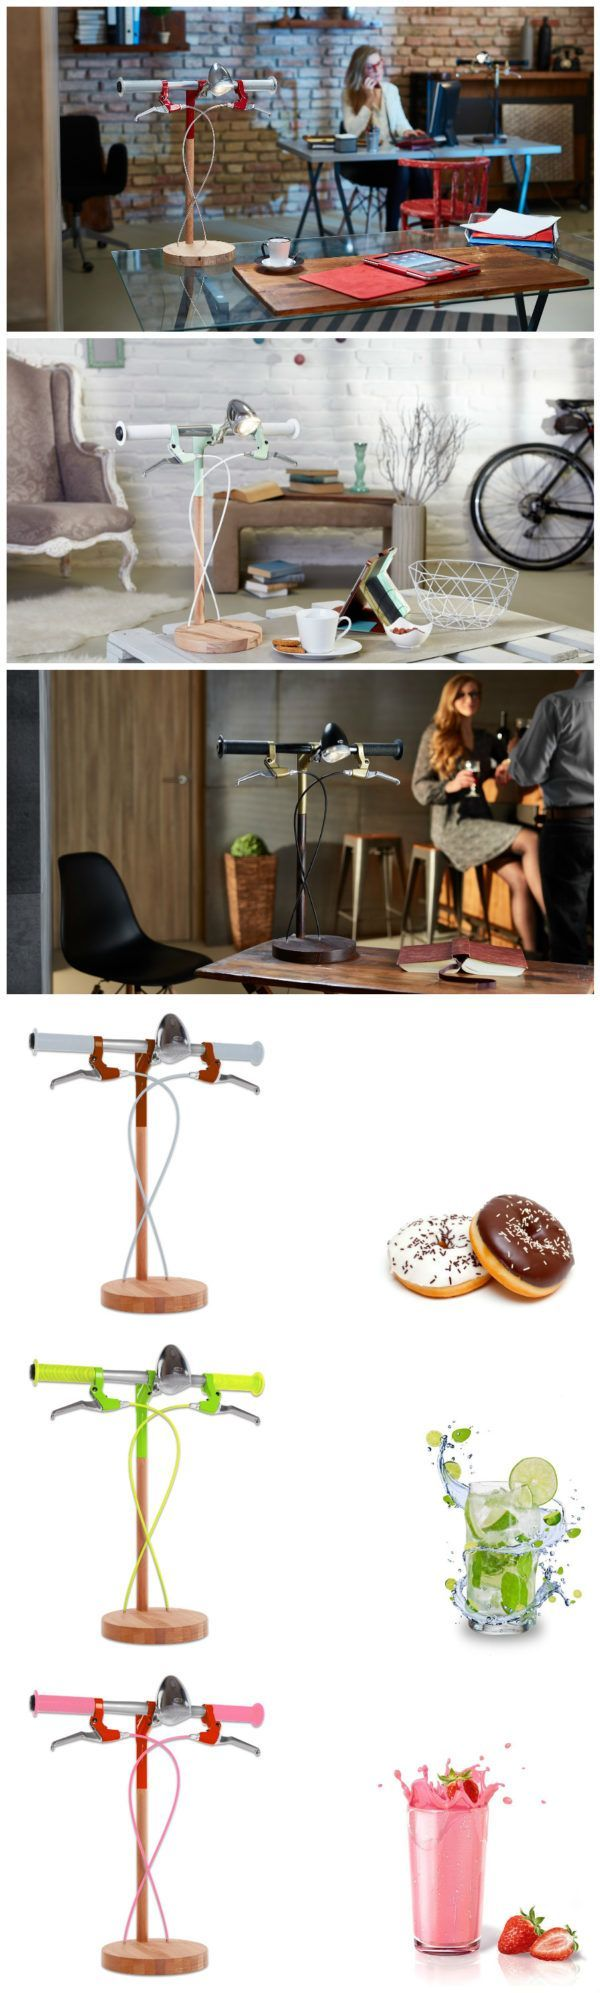 #Bike, #DeskLamp, #Lamps Industrial Kid's bicycle-inspired, contemporary design lamps offer the customers the freedom of choice by participating in the creative process. Desk lamps made from bicycle parts combined with the soft touch of wood create a special atmosphere at h